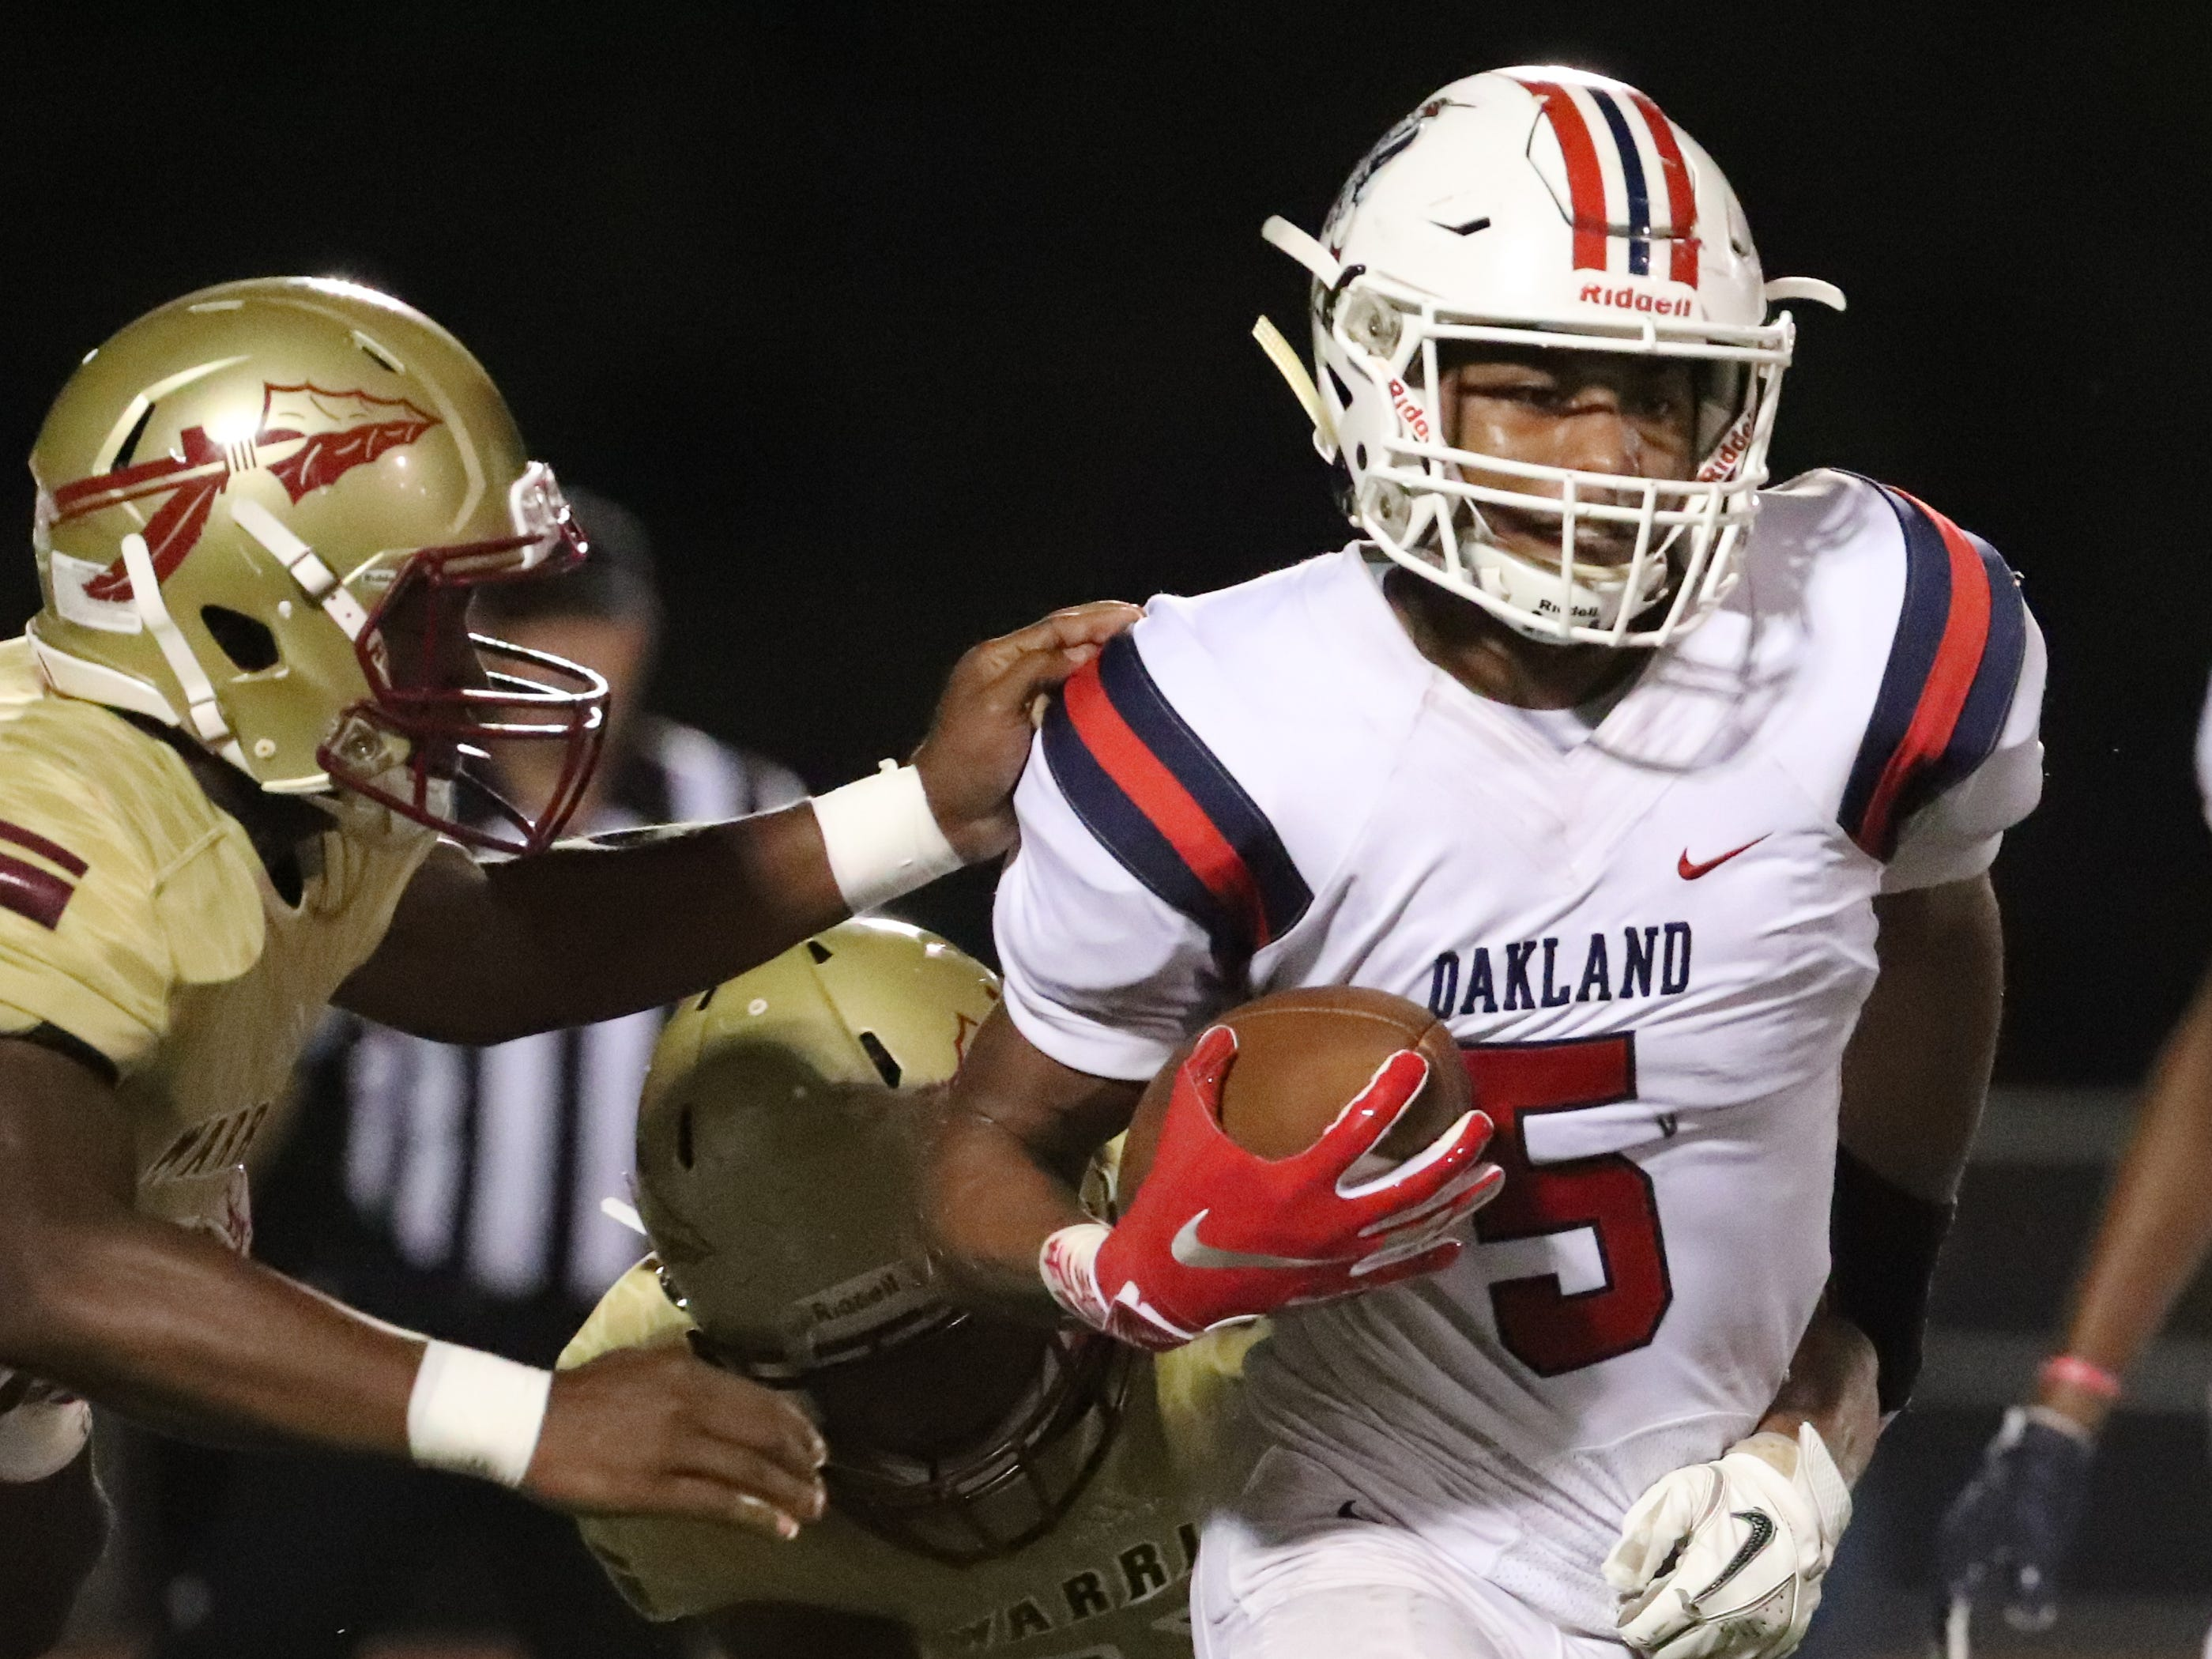 Oakland's Woodi Washington (5) runs the ball against Riverdale, at Riverdale, during the Battle of the Boro on Friday, Sept. 14, 2018.